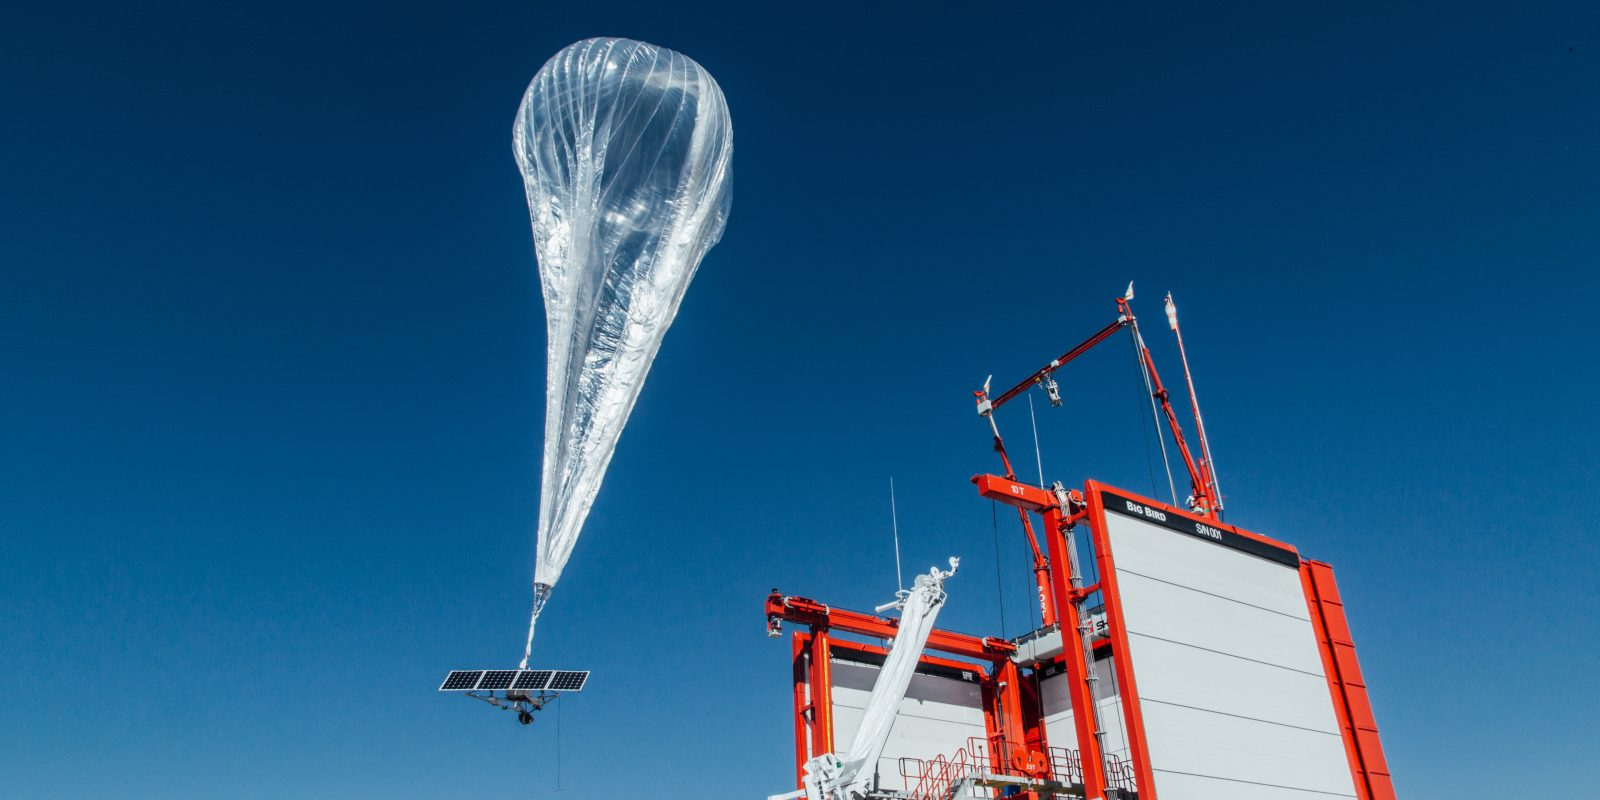 Loon deploys LTE balloons to Peru 48 hours after magnitude 8.0 earthquake